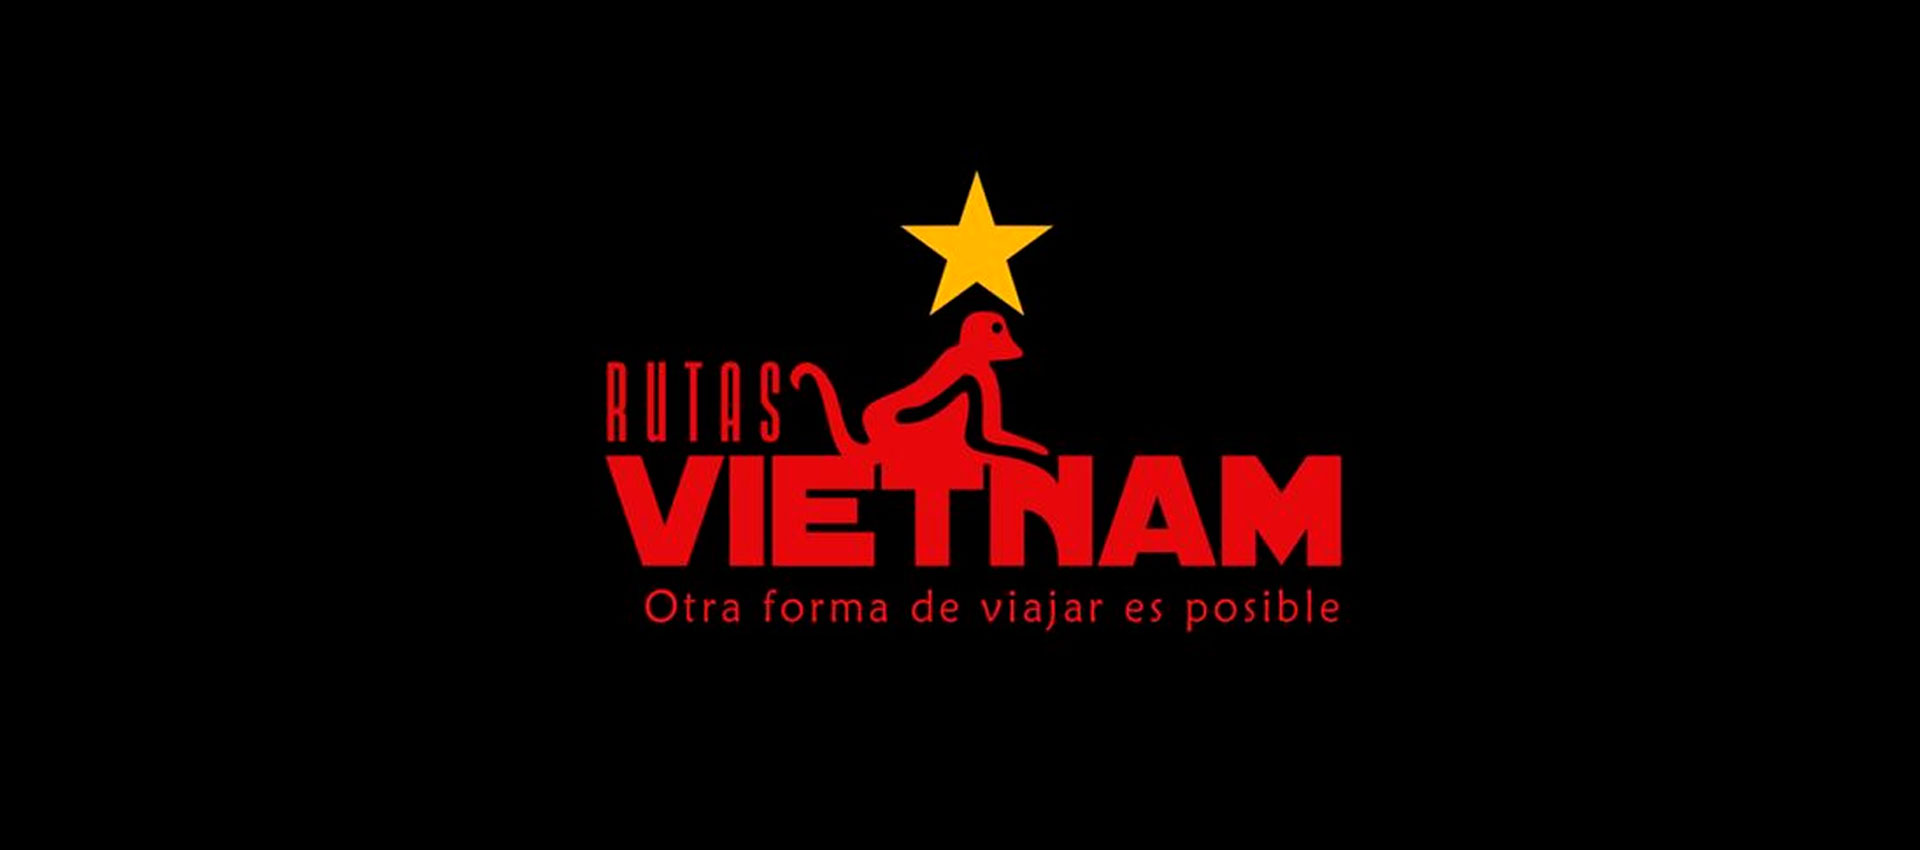 Rutas-Vietnam Spots & Eventos Corporativos - video boda cadiz